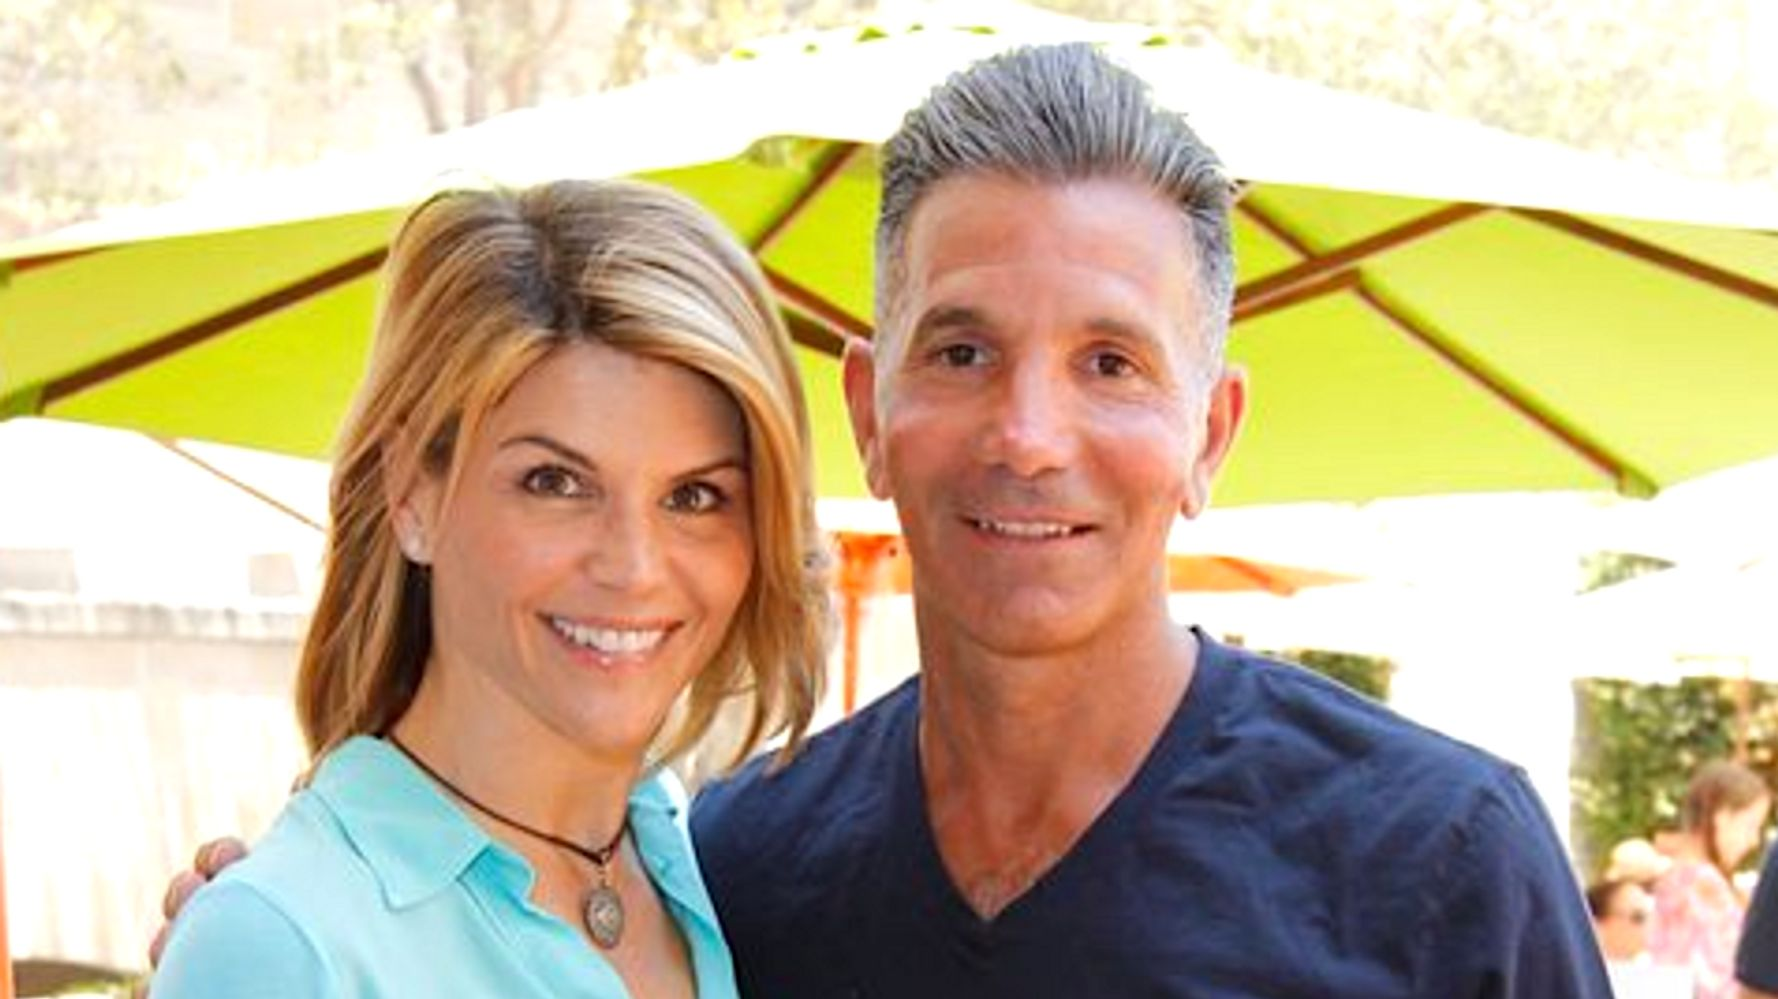 Lori Loughlin And Mossimo Giannulli Quit Bel-Air Country Club Amid Tensions